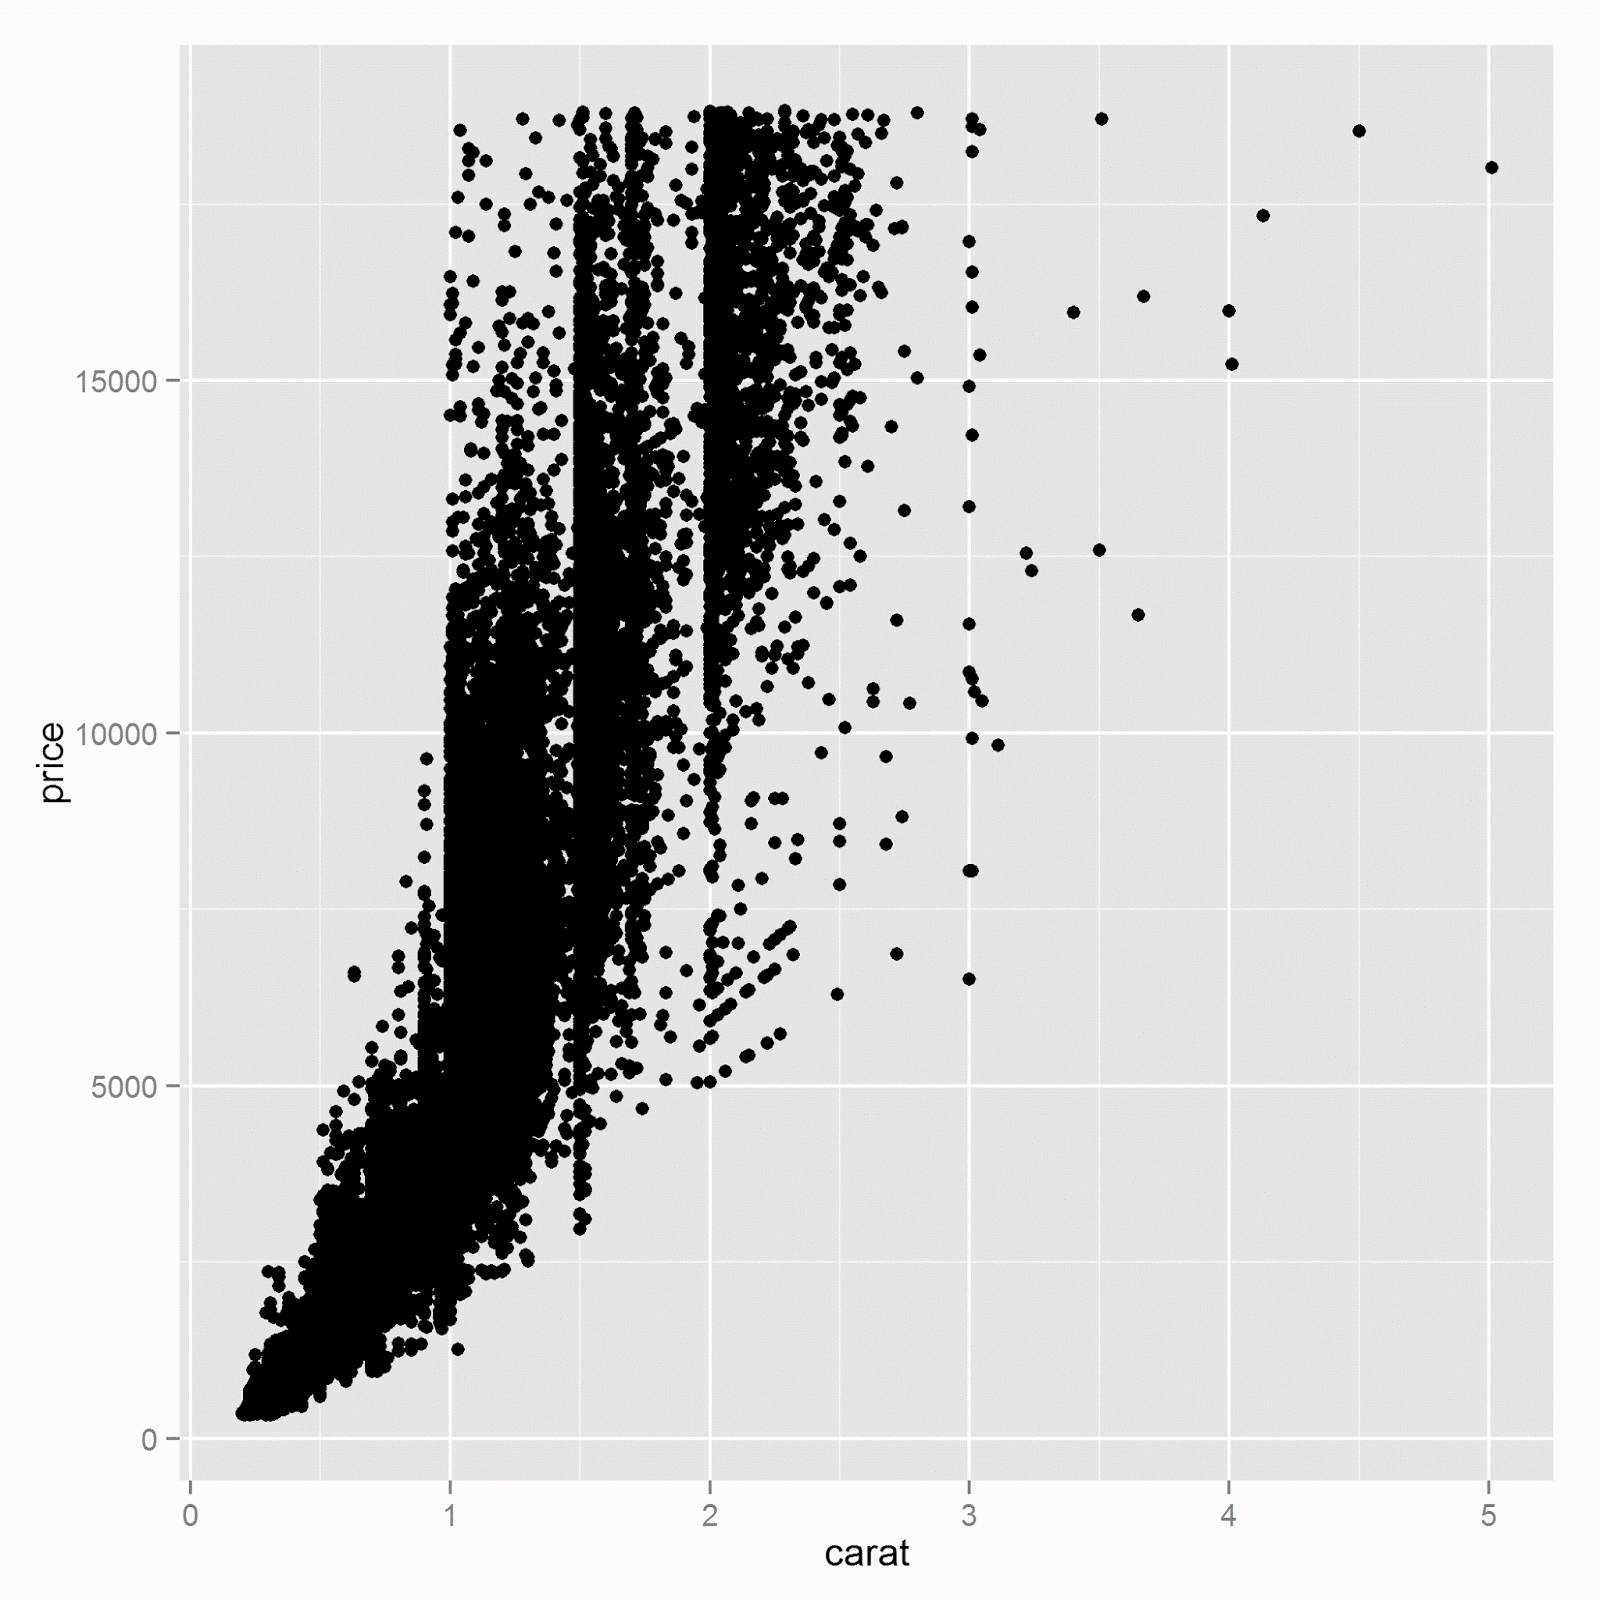 ggplot data diamonds aes x carat y price initialize plot geom point add a layer of points make scatterplot